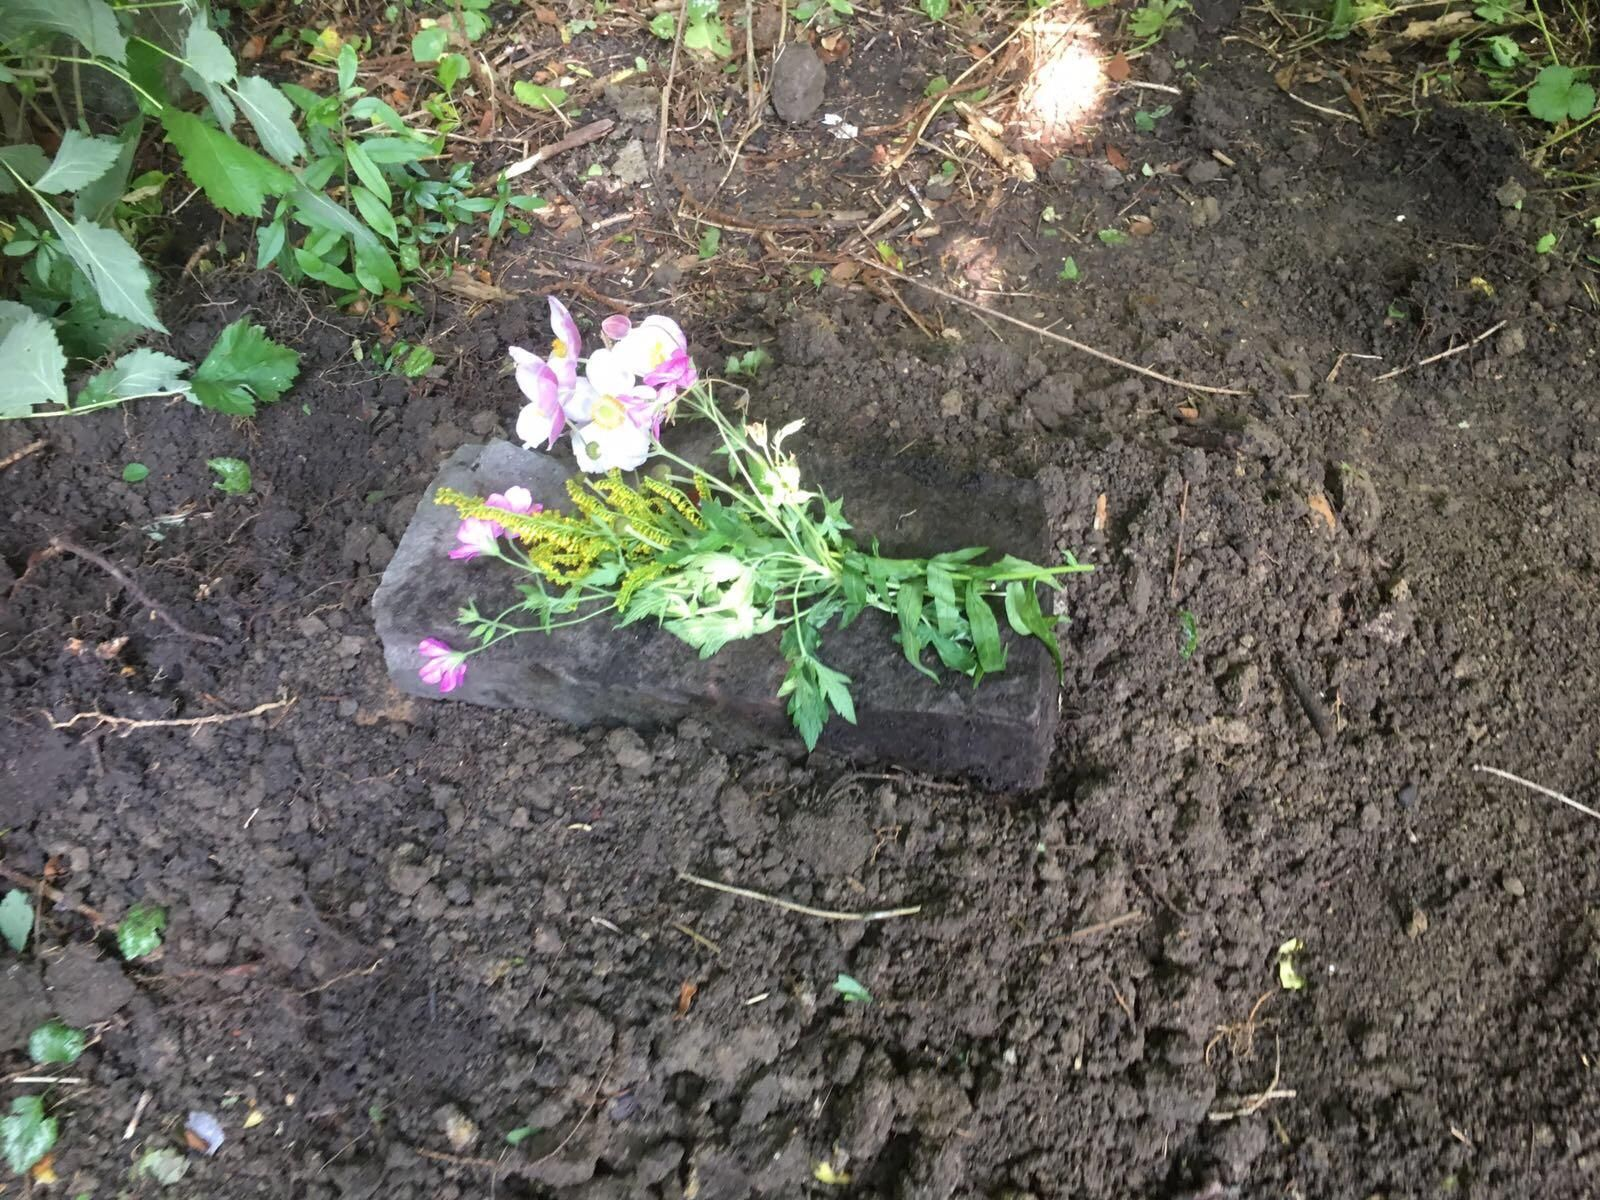 Her burial in the backyard next to our old dog. Bus 2002 ...